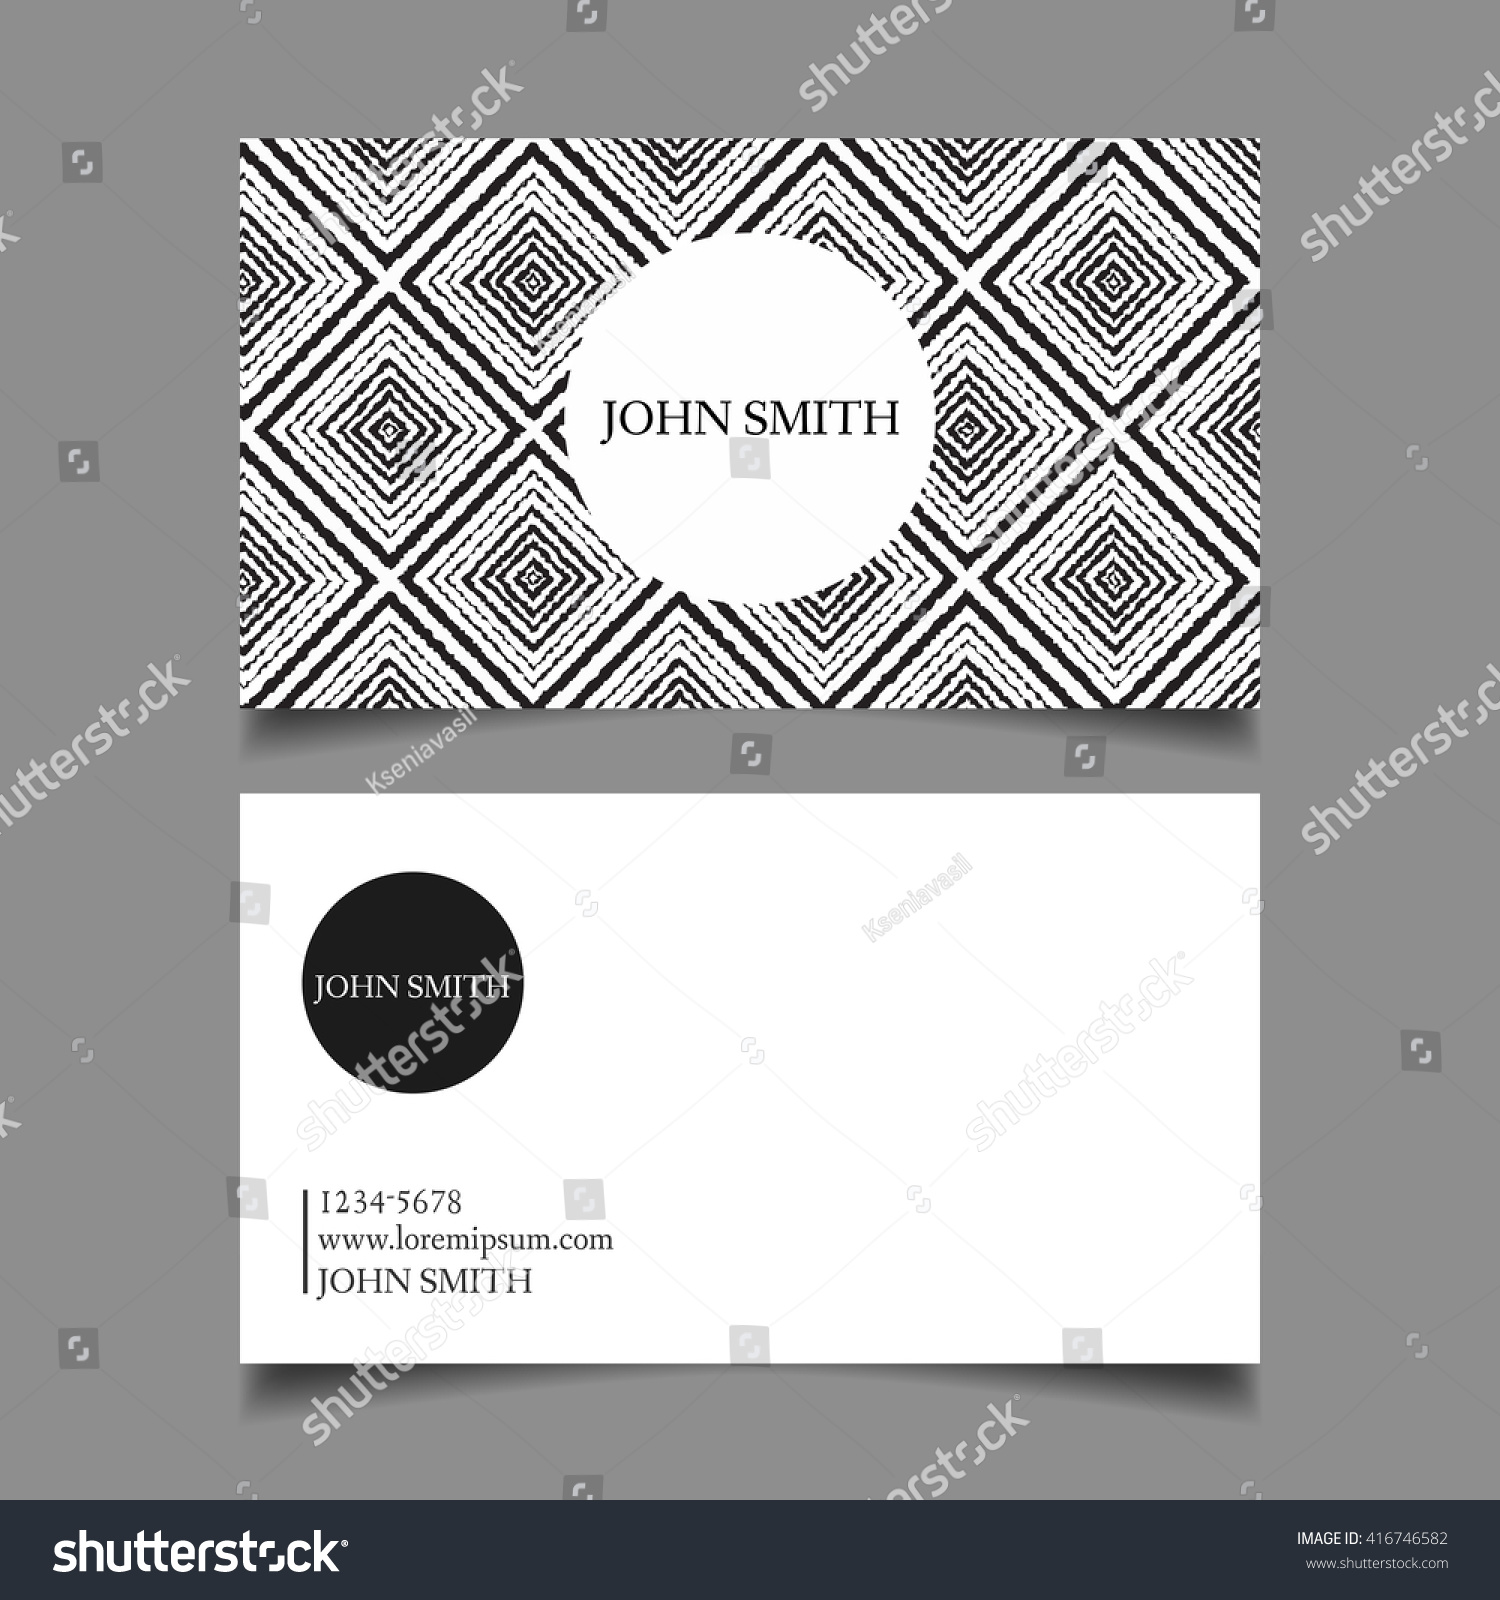 Business card map generator choice image card design and card template business card map maker images card design and card template business card map generator image collections reheart Images